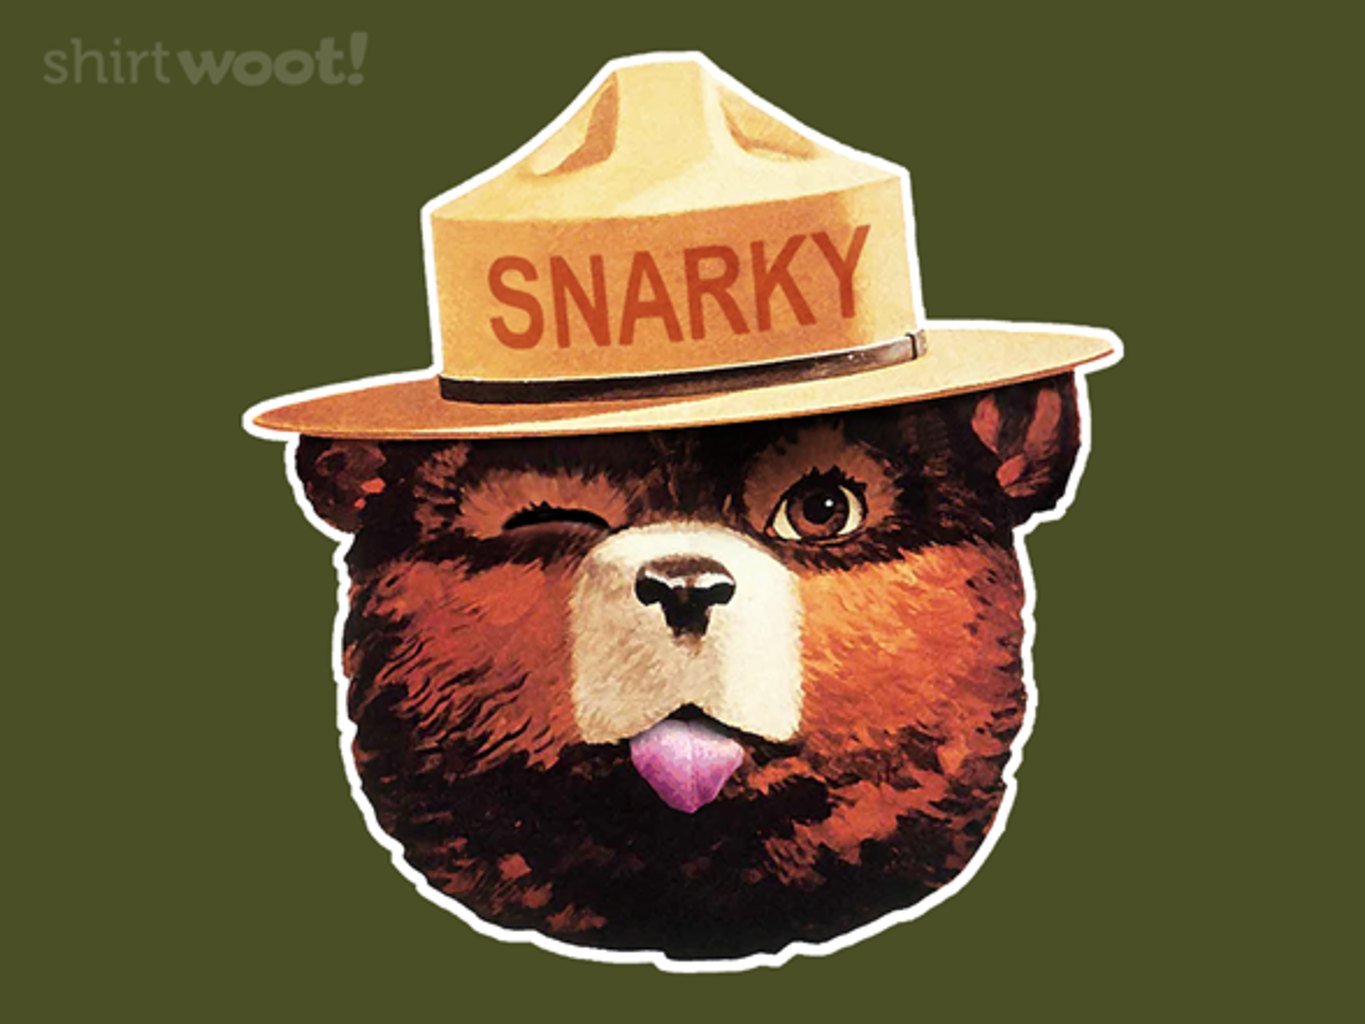 Woot!: Snarky the Bear